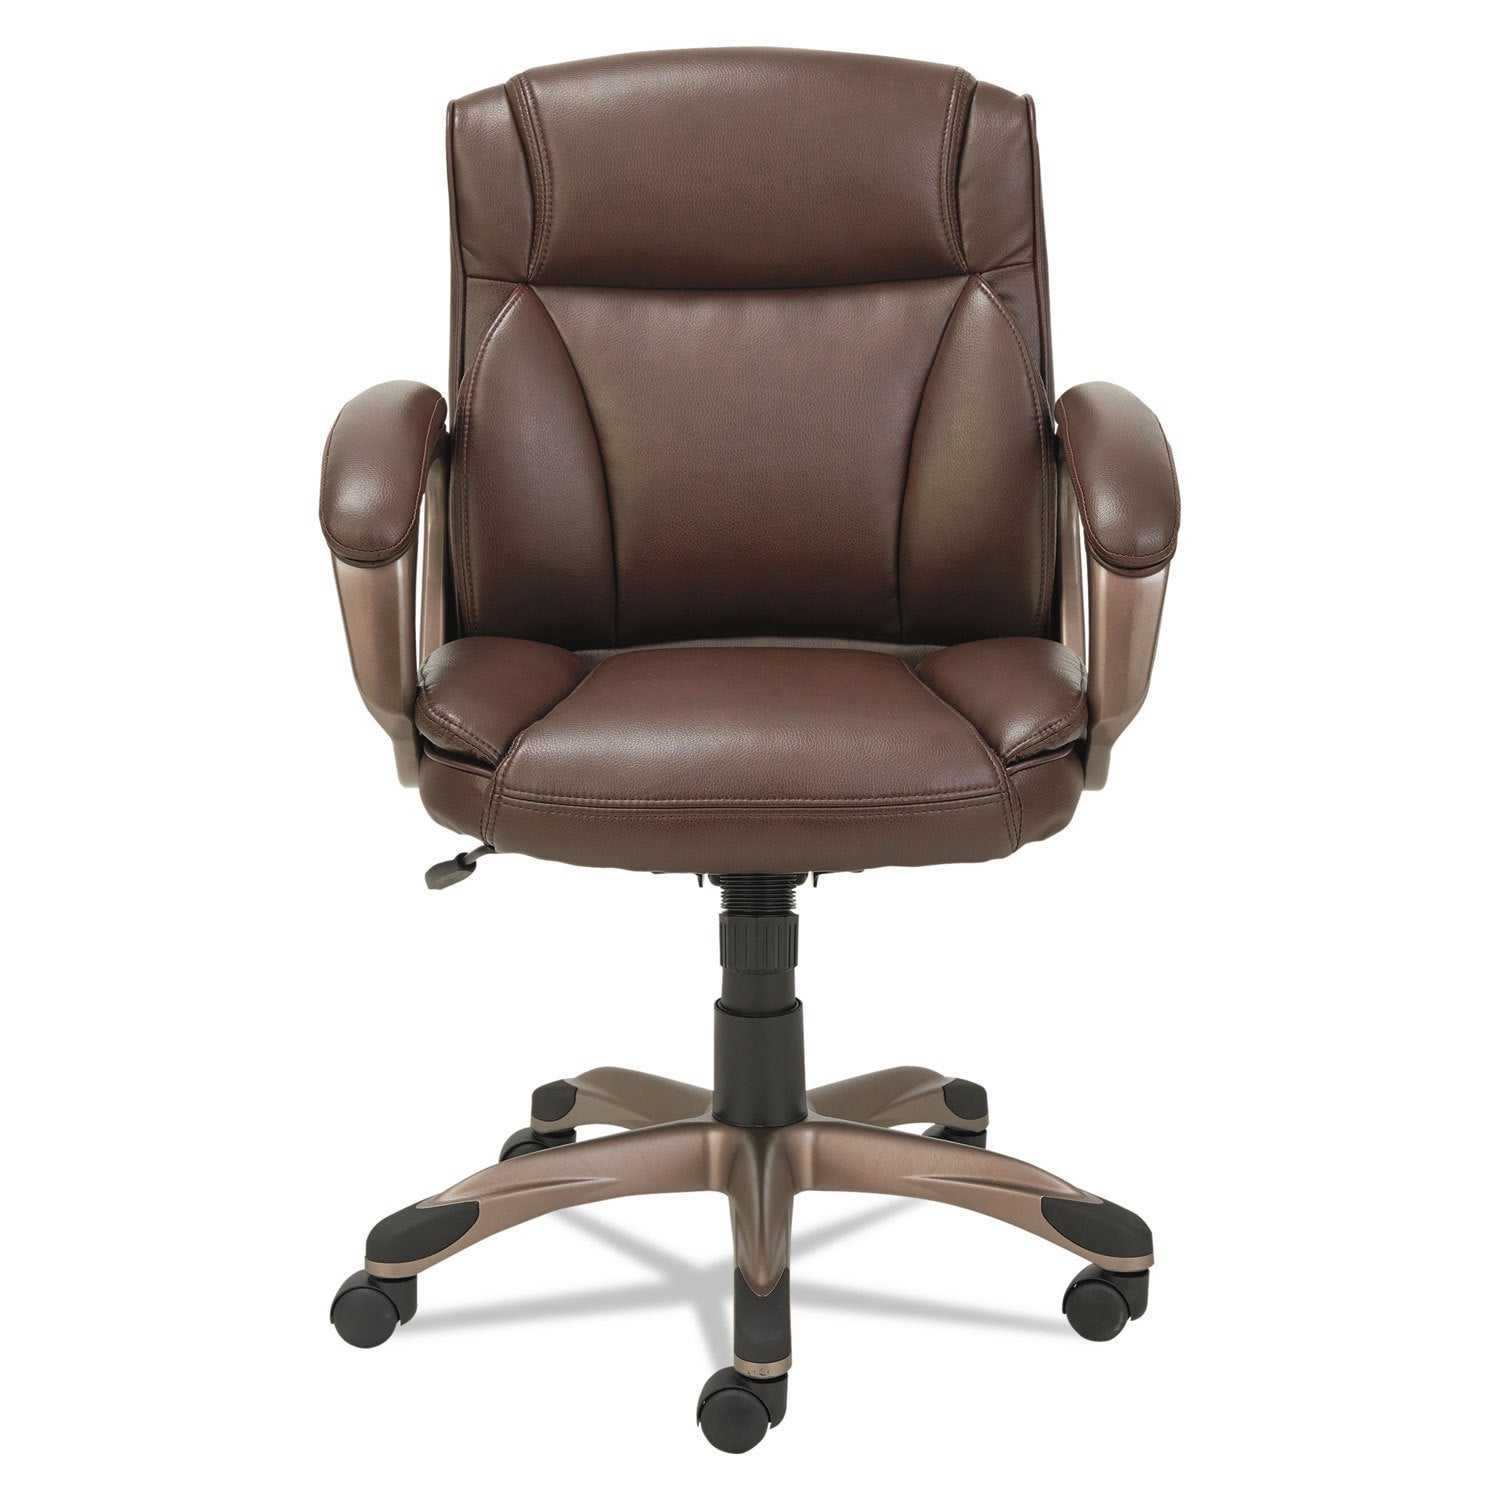 Beau Shop Alera Veon Series Low Back Leather Task Chair With Coil Spring Cushion  Brown   Free Shipping Today   Overstock.com   13995791